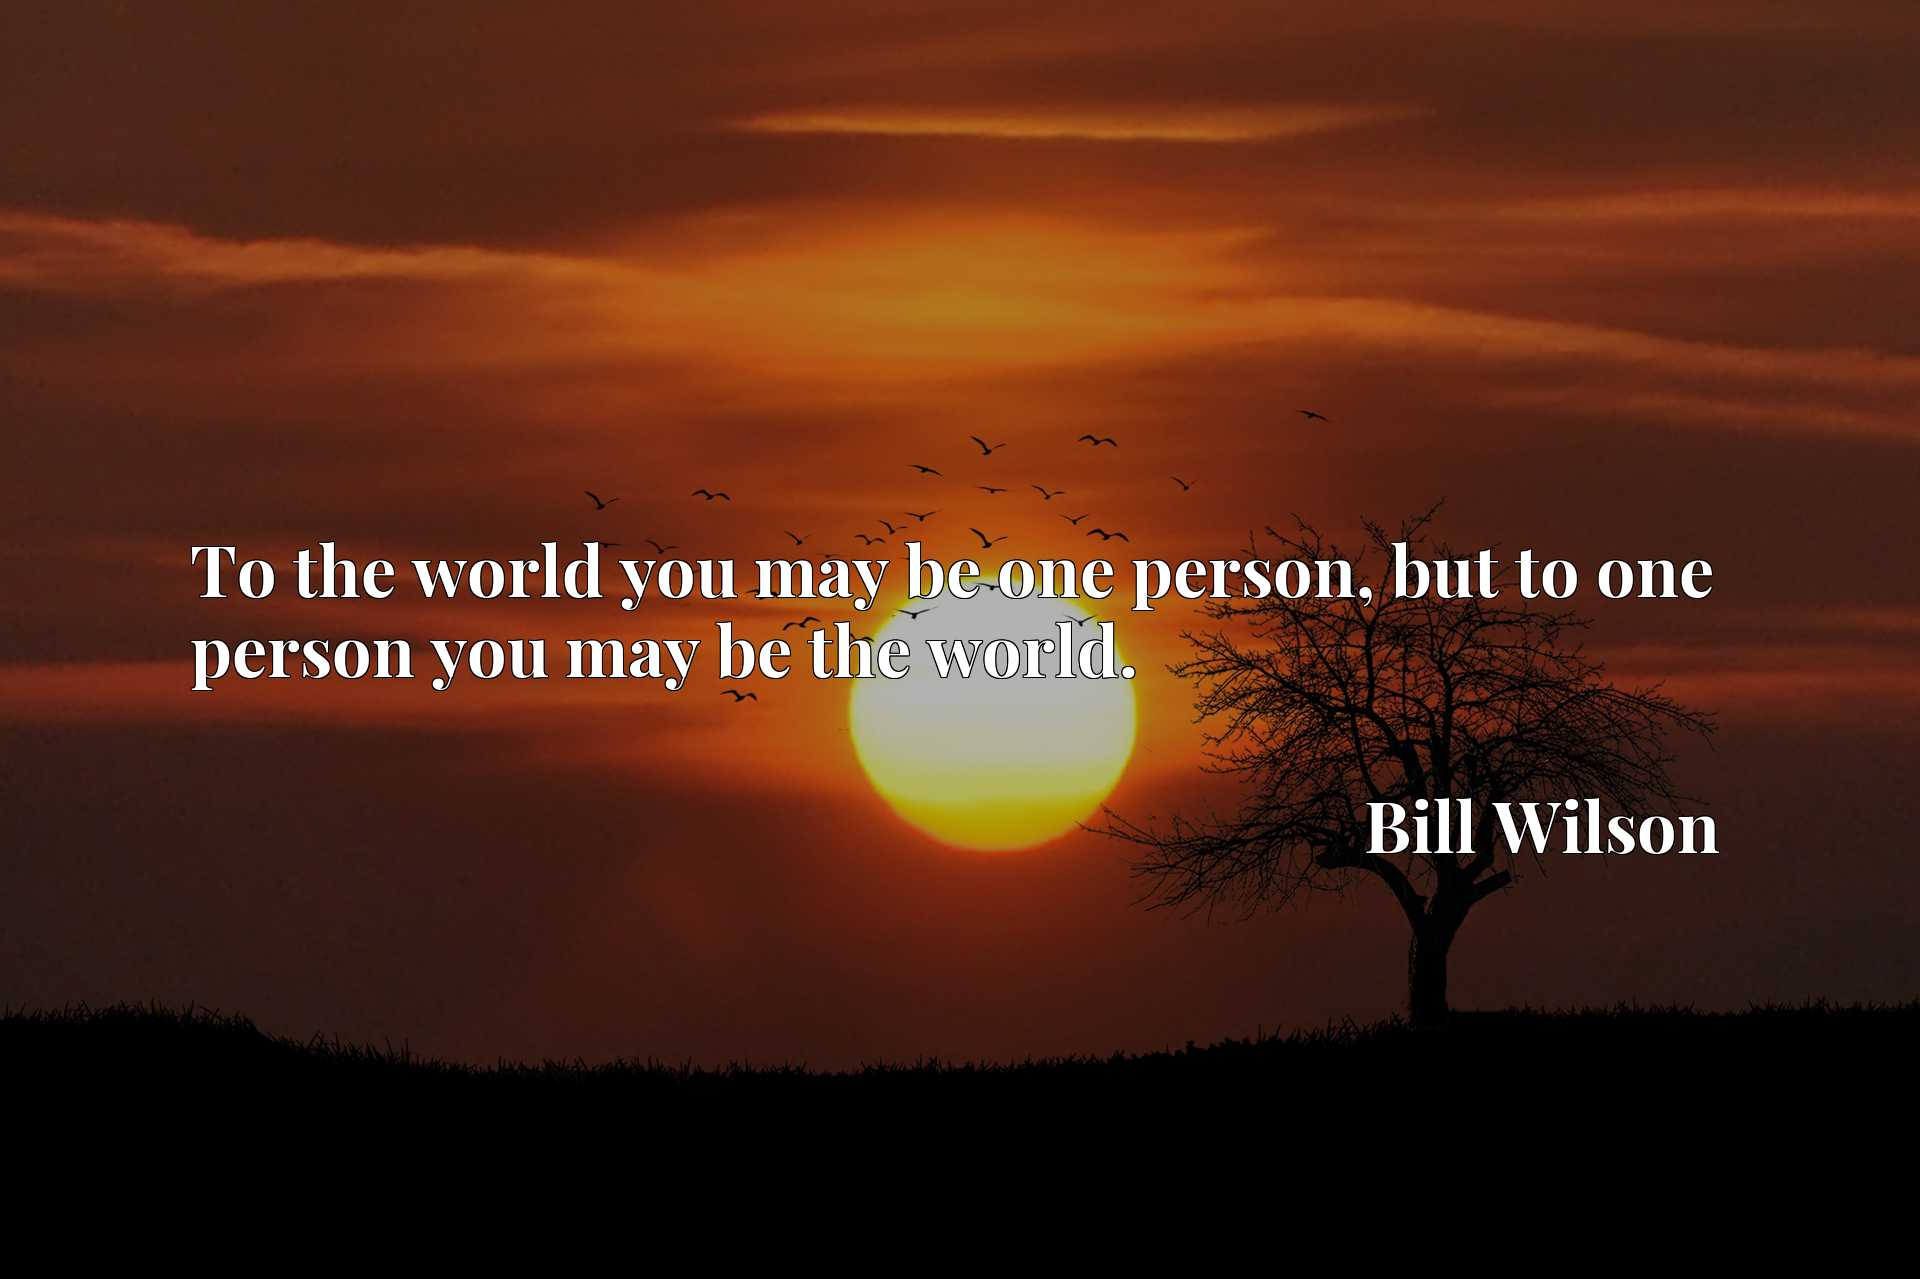 Quote Picture :To the world you may be one person, but to one person you may be the world.